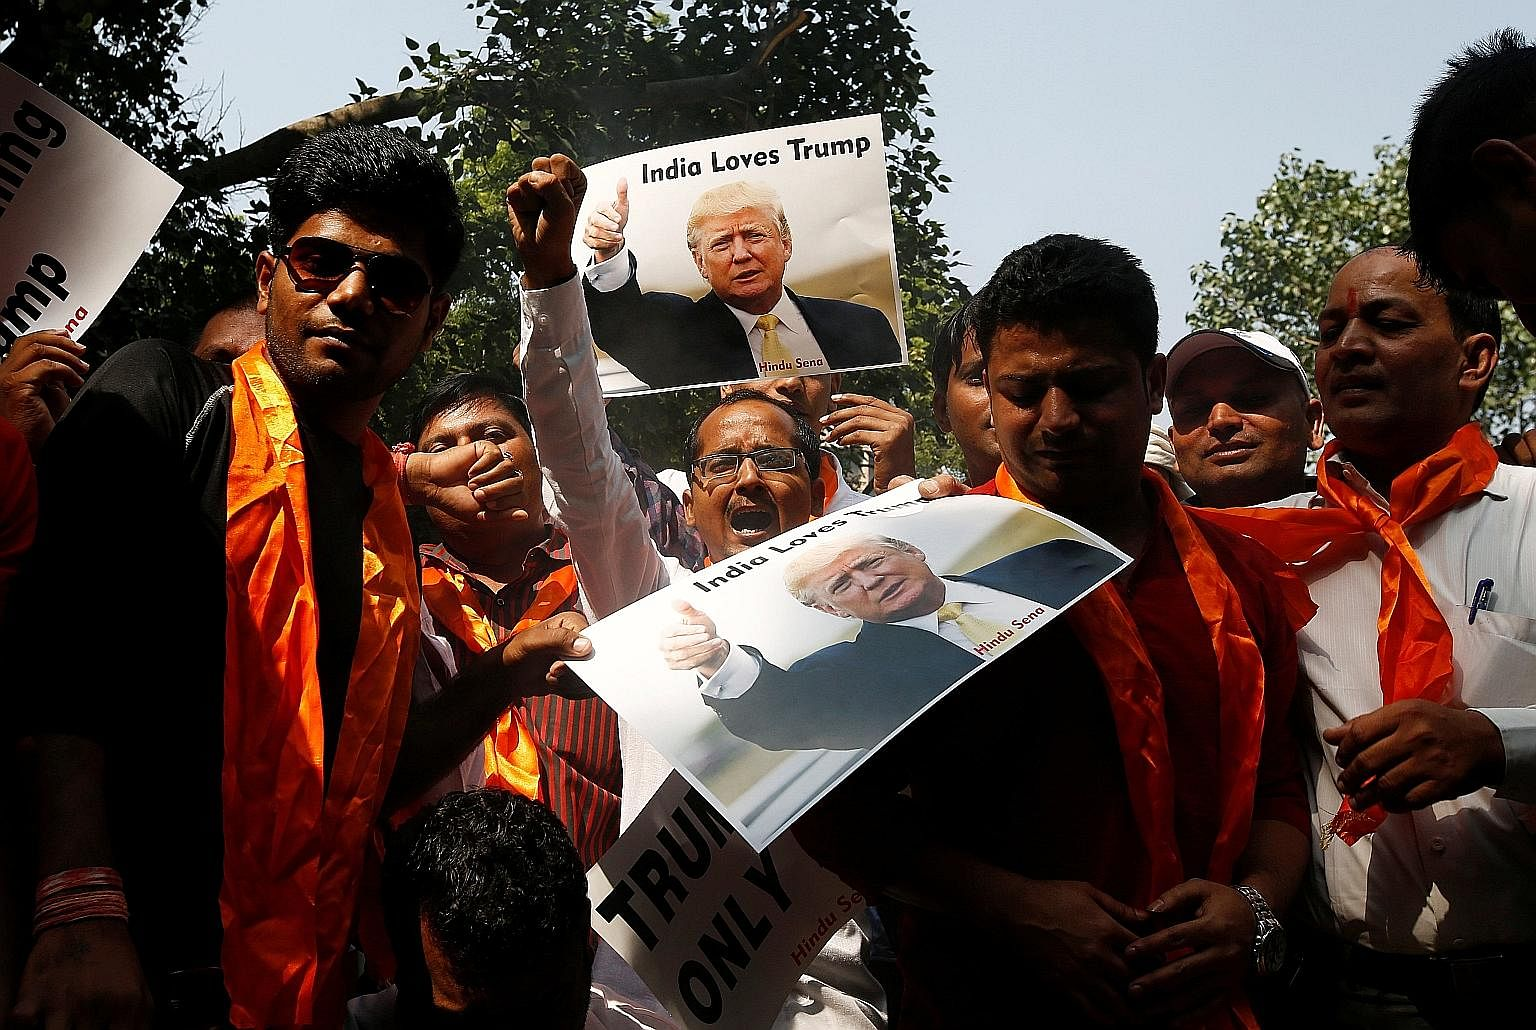 Members of a right-wing Hindu group at a pro-Trump demonstration in New Delhi last October. India should take advantage of Mr Trump's adversarial stance against China to develop equally good ties with China and the US, says the writer.